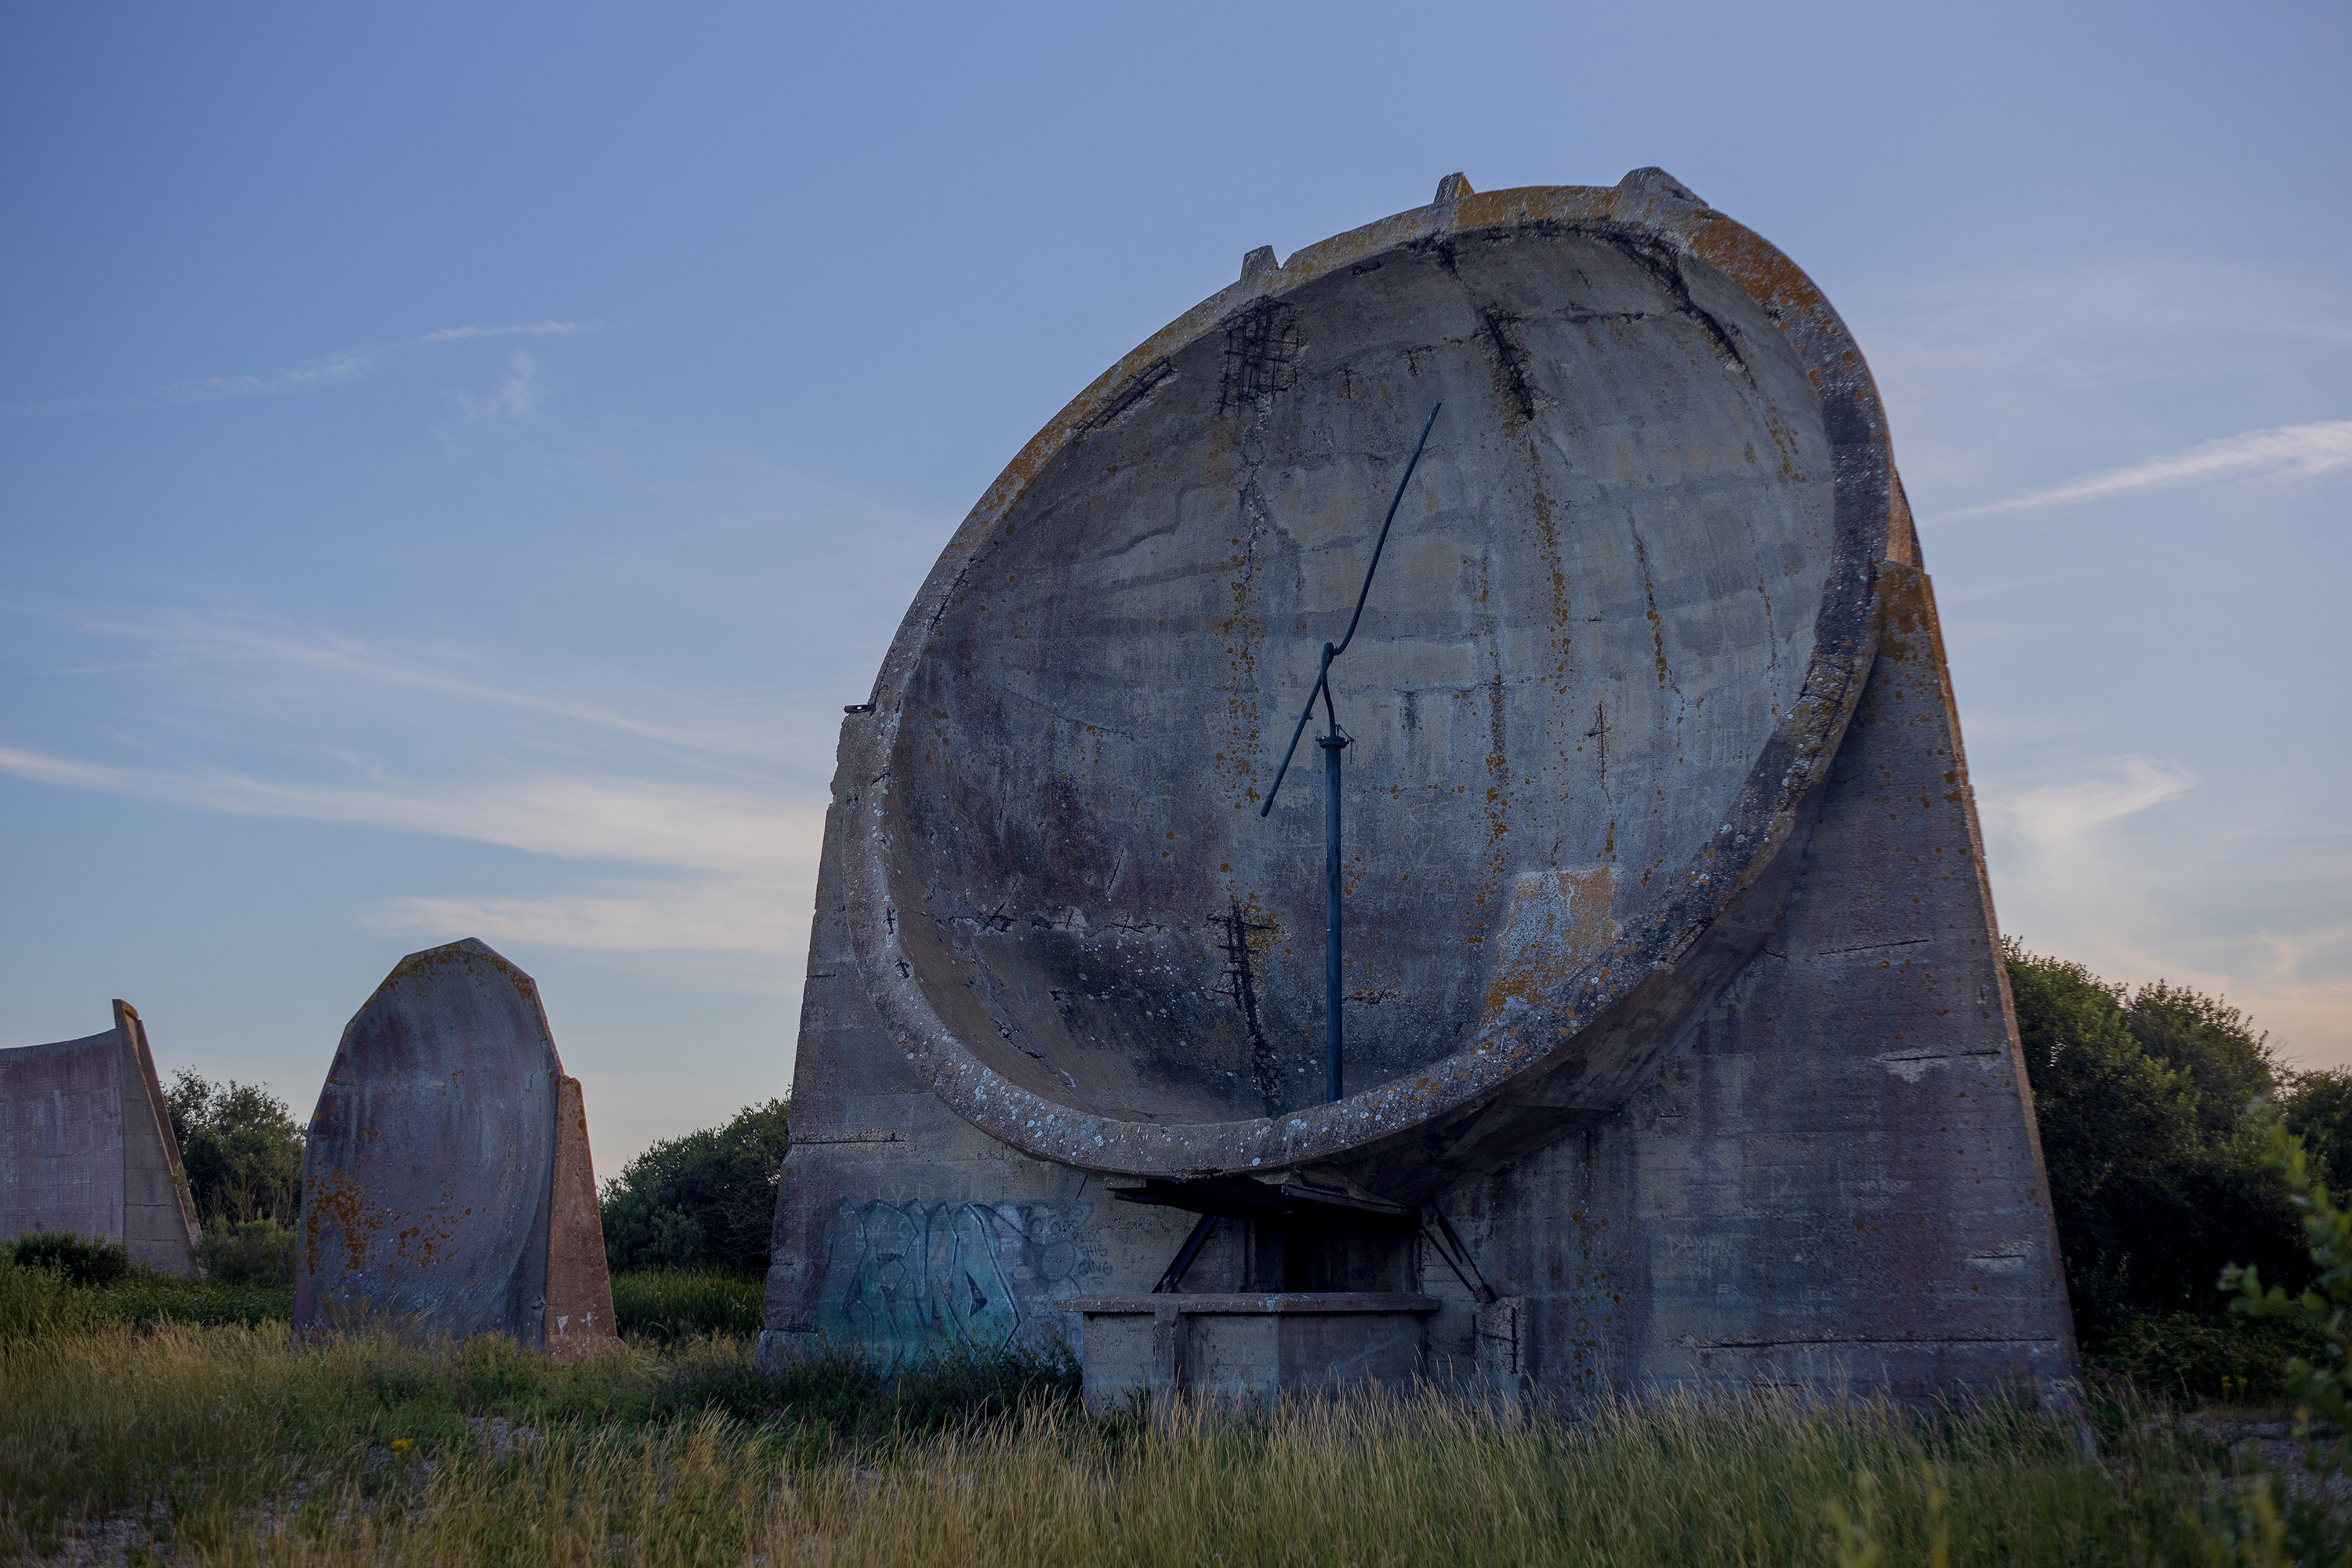 Denge sound mirrors were used to detect incoming aircraft before the invention of Radar